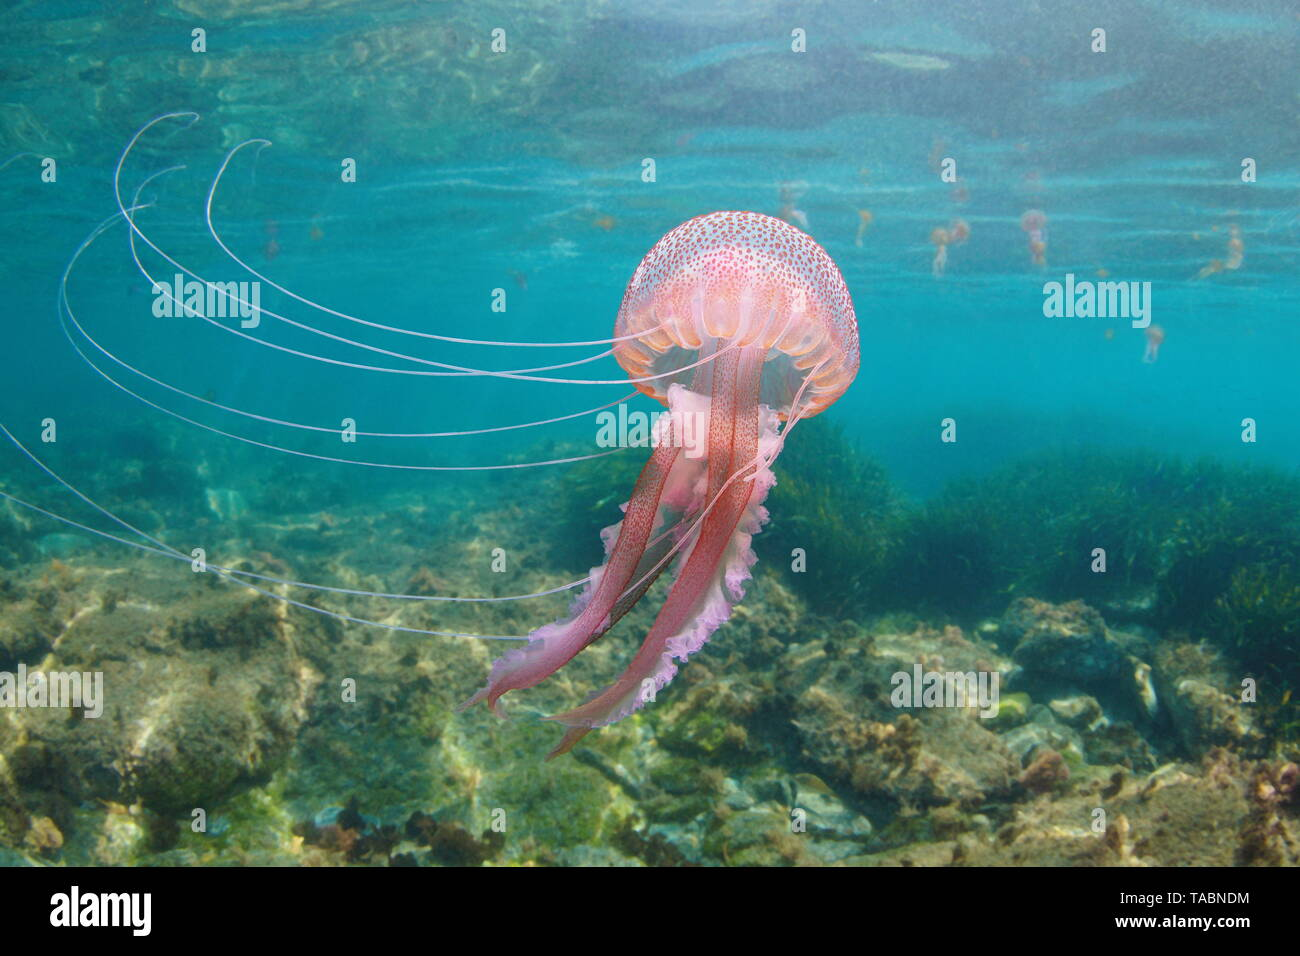 Beautiful jellyfish underwater in Mediterranean sea, Mauve stinger Pelagia noctiluca - Stock Image